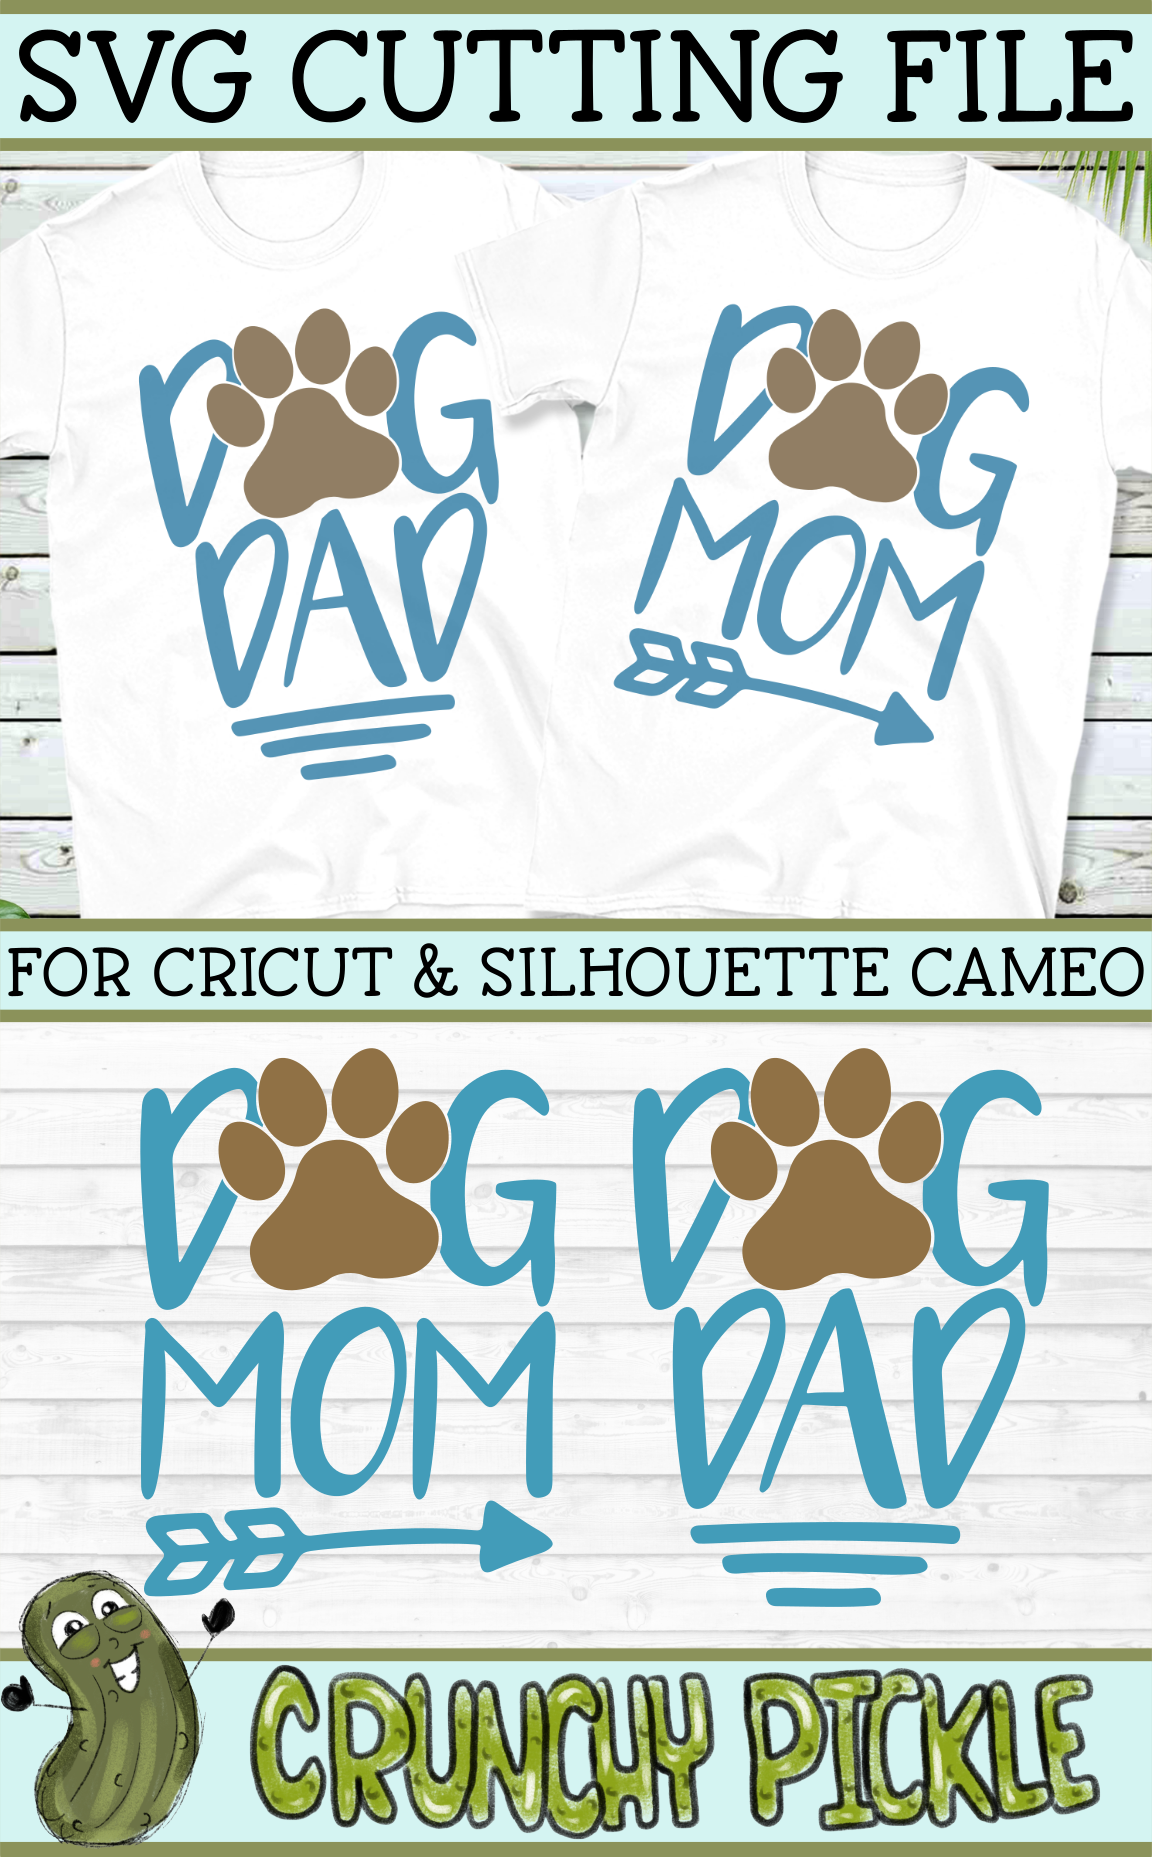 Dog Mom and Dog Dad SVG Dog mom, Dads, Cricut